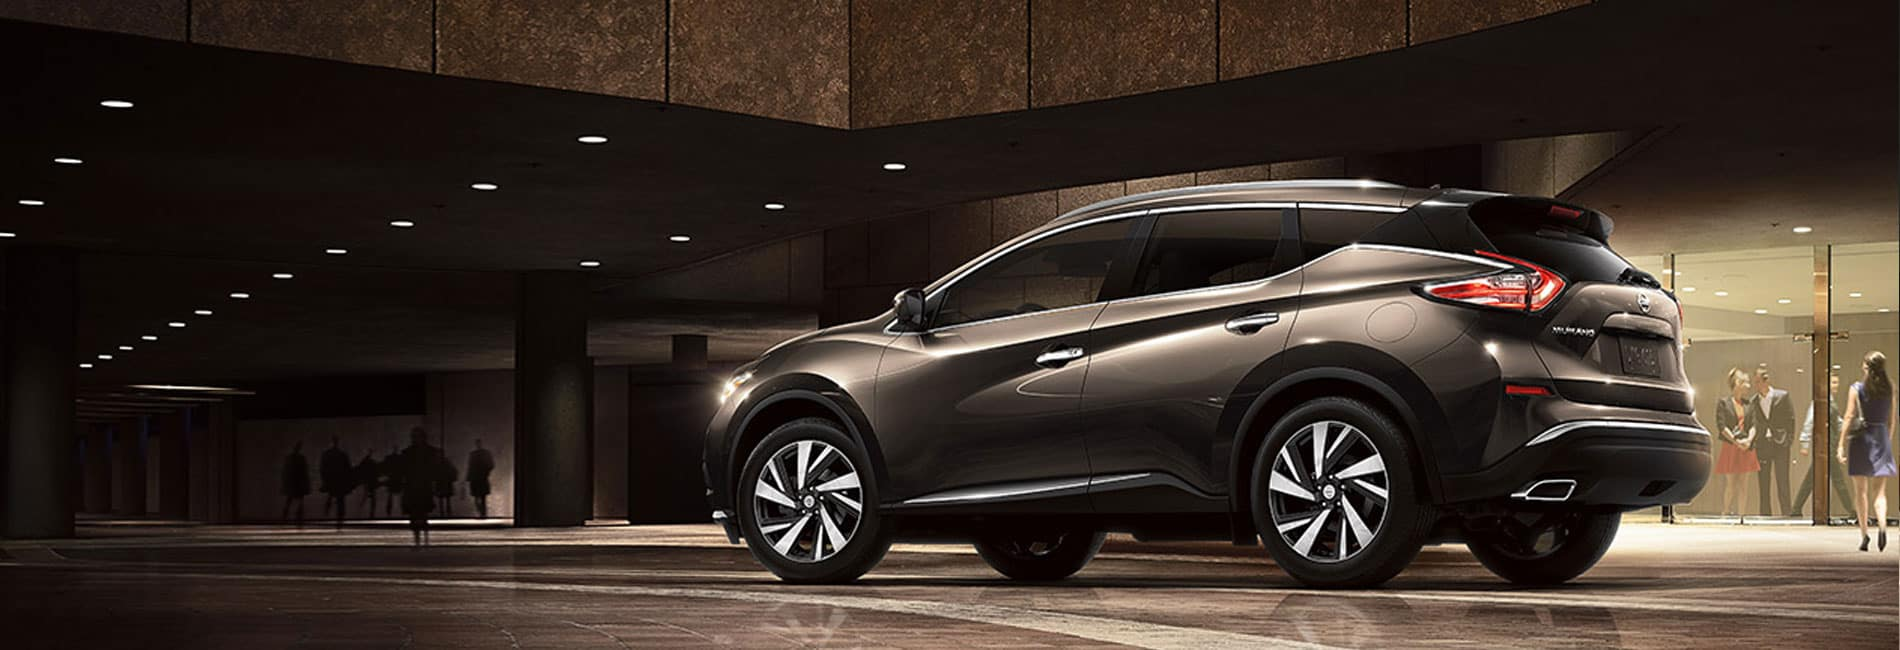 2018 Nissan Murano Trims at Star Nissan